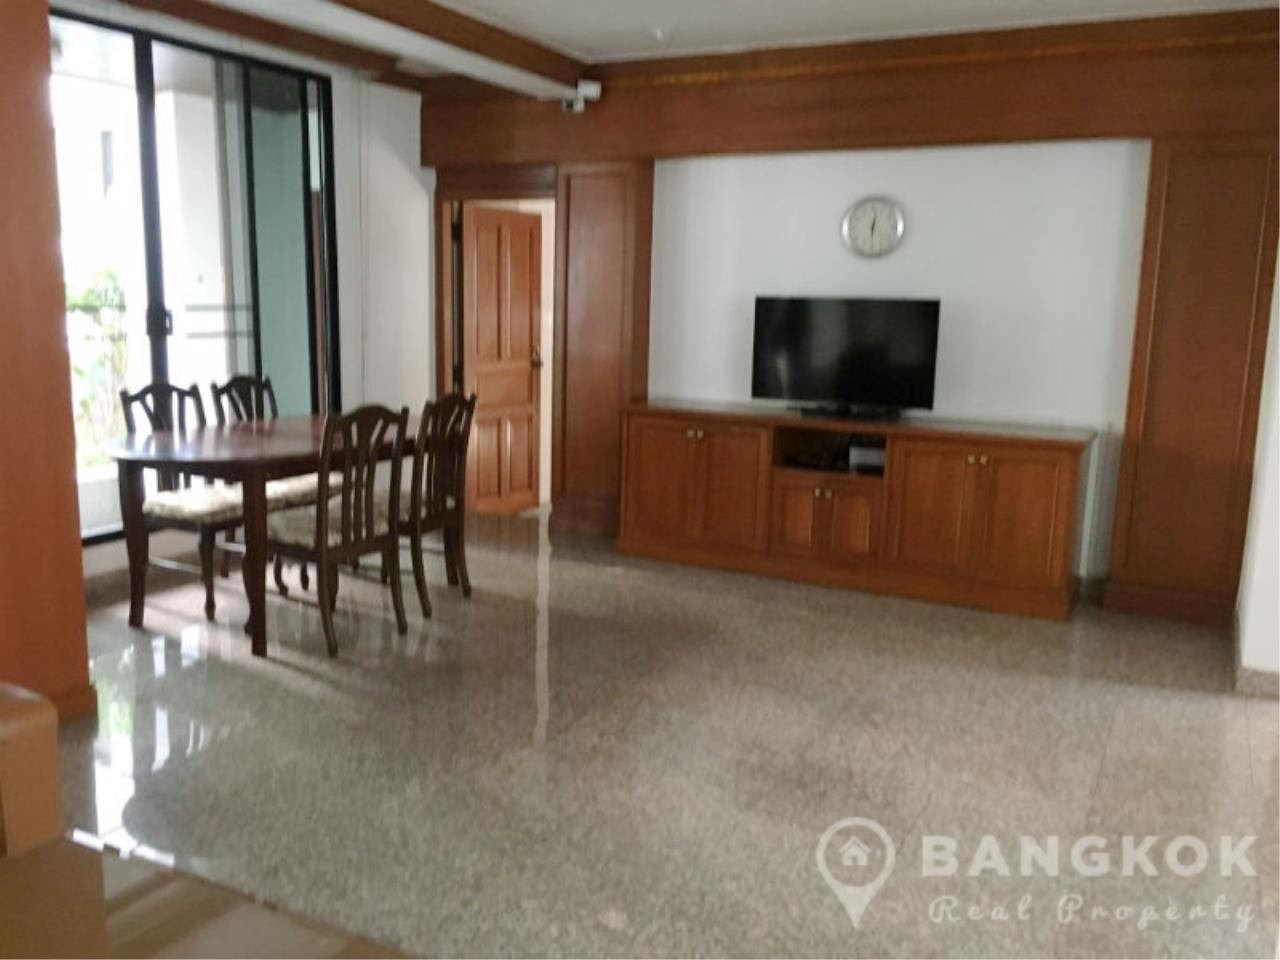 Bangkok Real Property Agency's Detached Spacious 3 + 1 Bed 3 Bath house with Garden in Nana  3